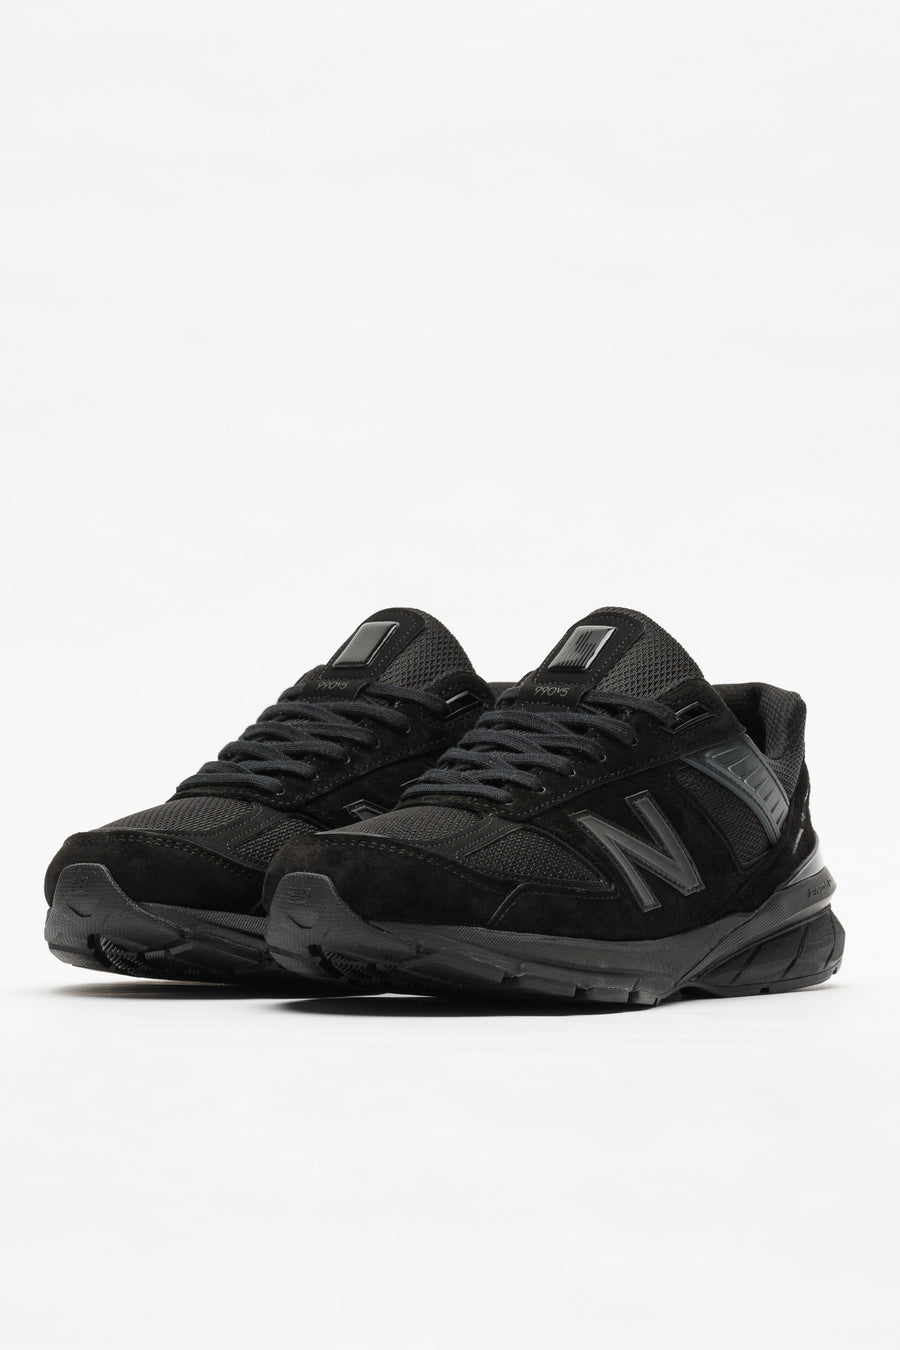 New Balance M990BB5 in Black - Notre